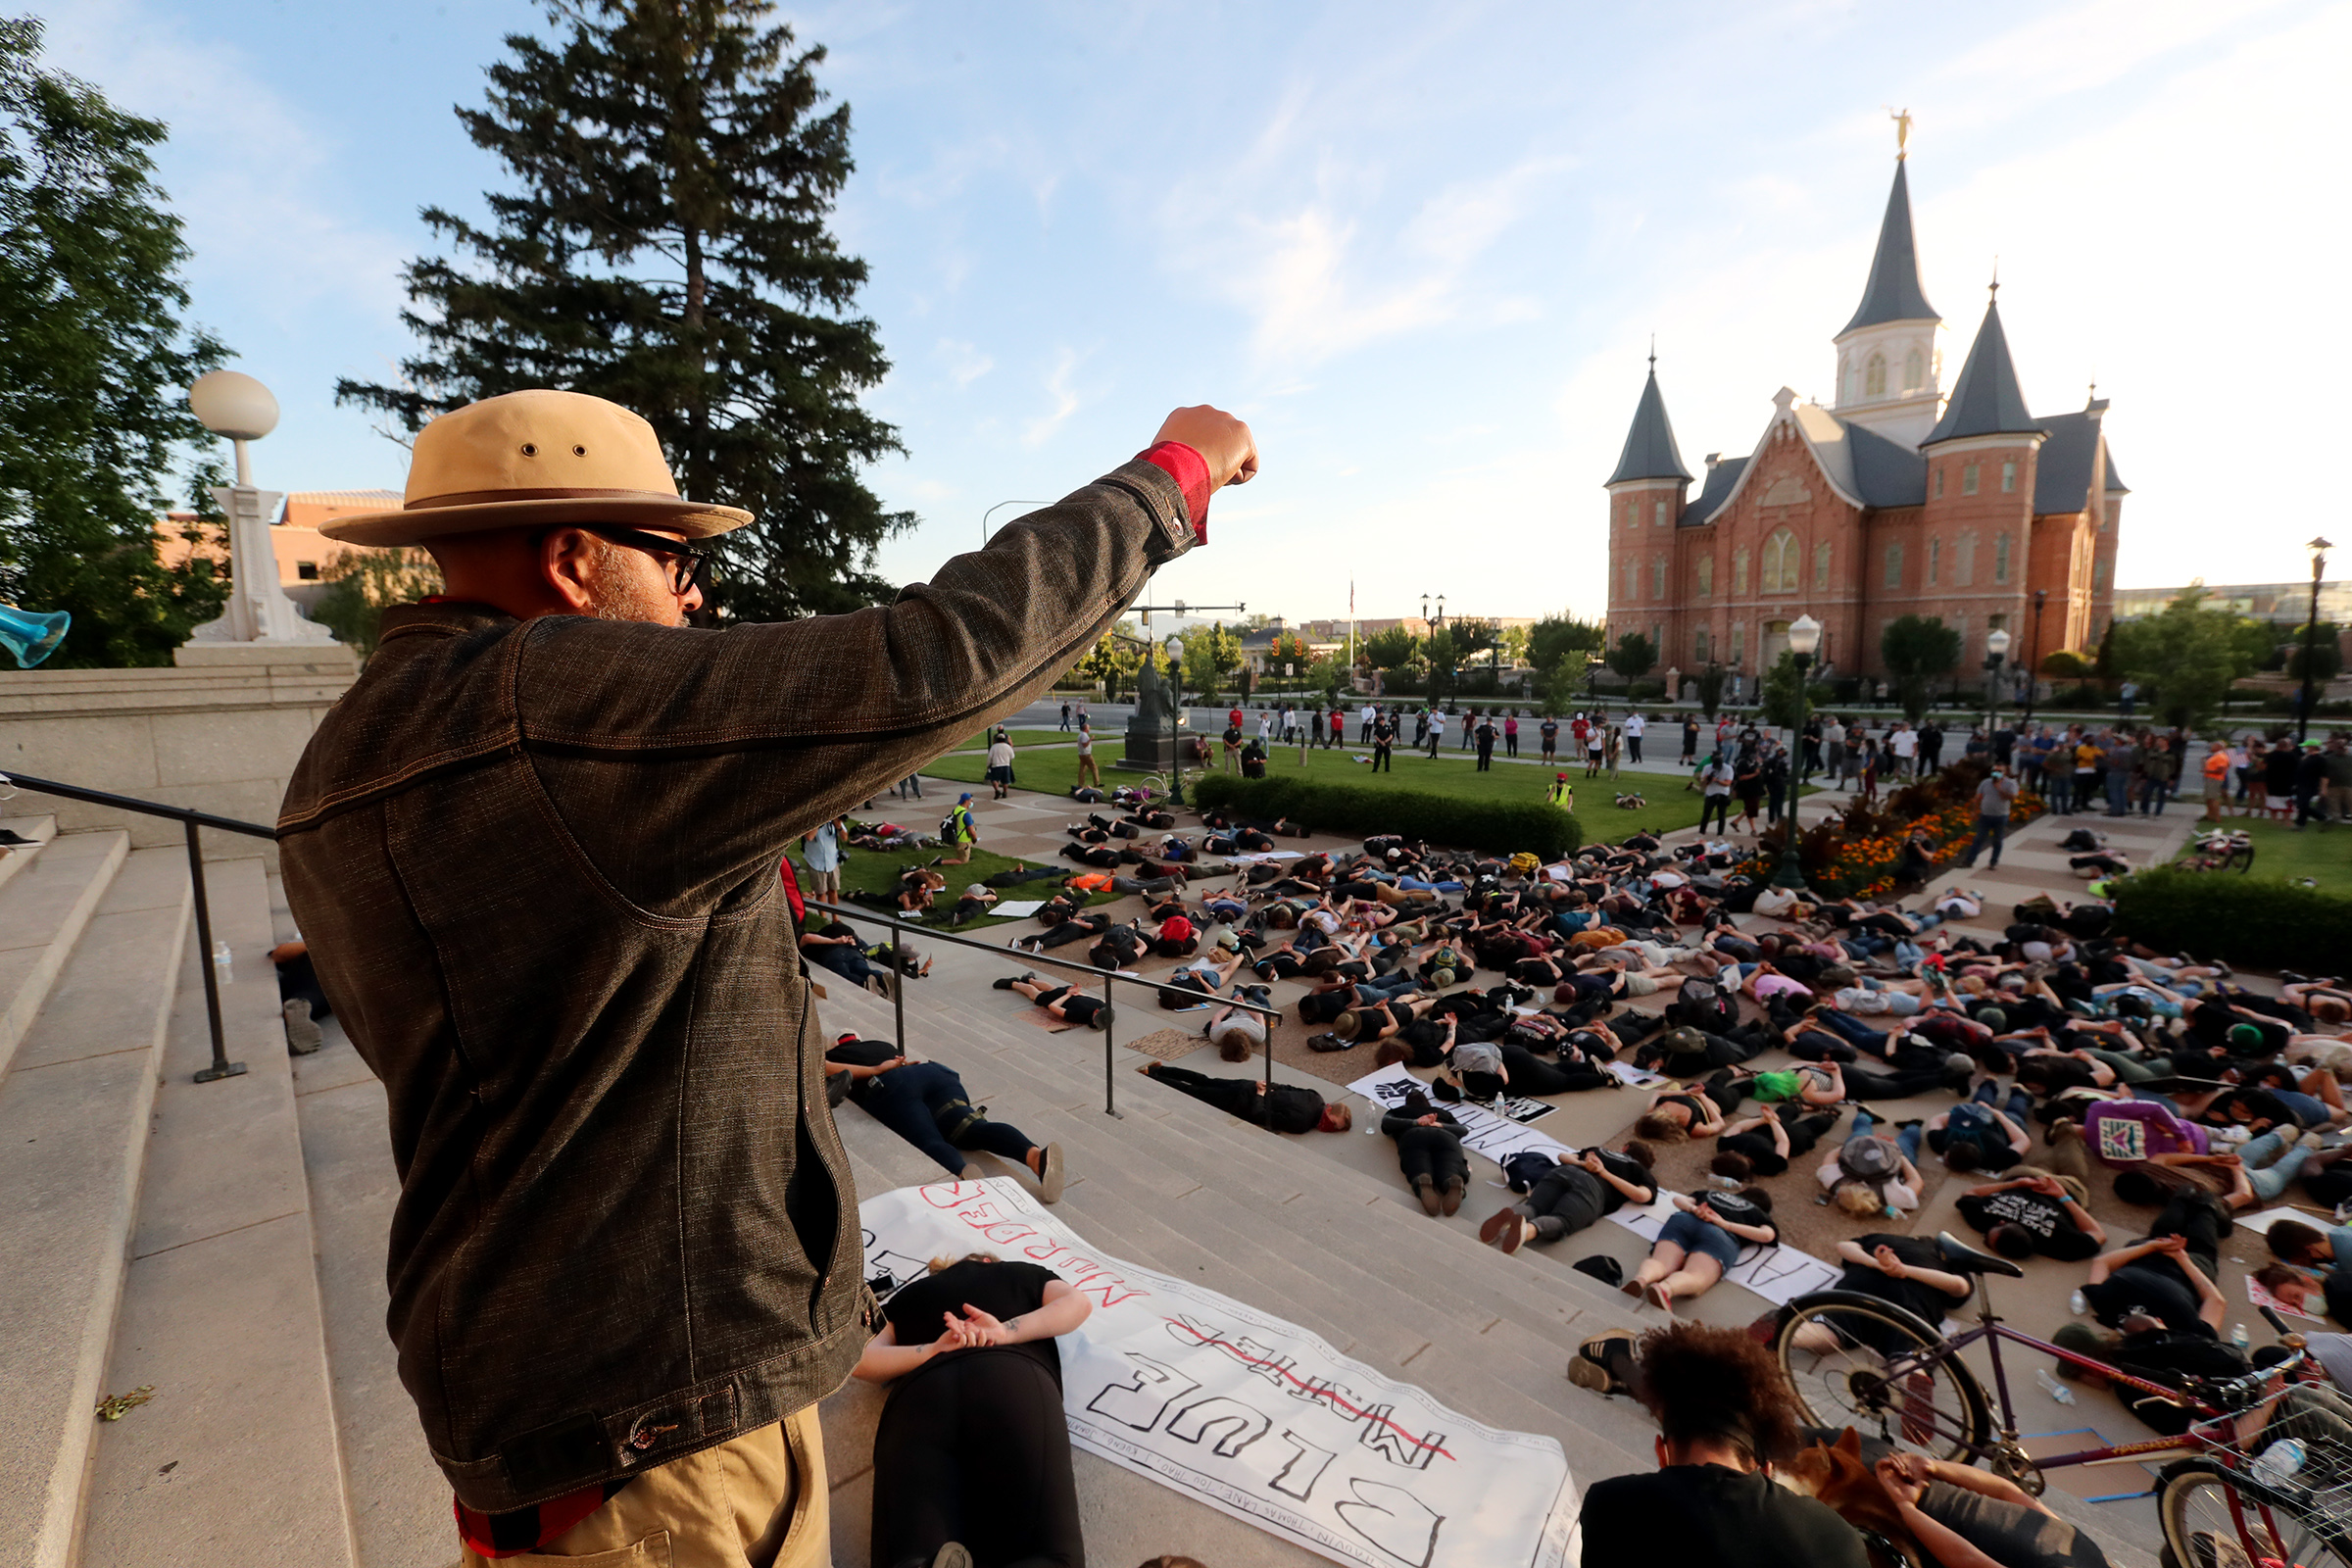 Macky, who did not provide a last name, holds his fist high for 8 minutes and 46 seconds as protesters lay down as they gather in Provo on Wednesday, July 1, 2020.